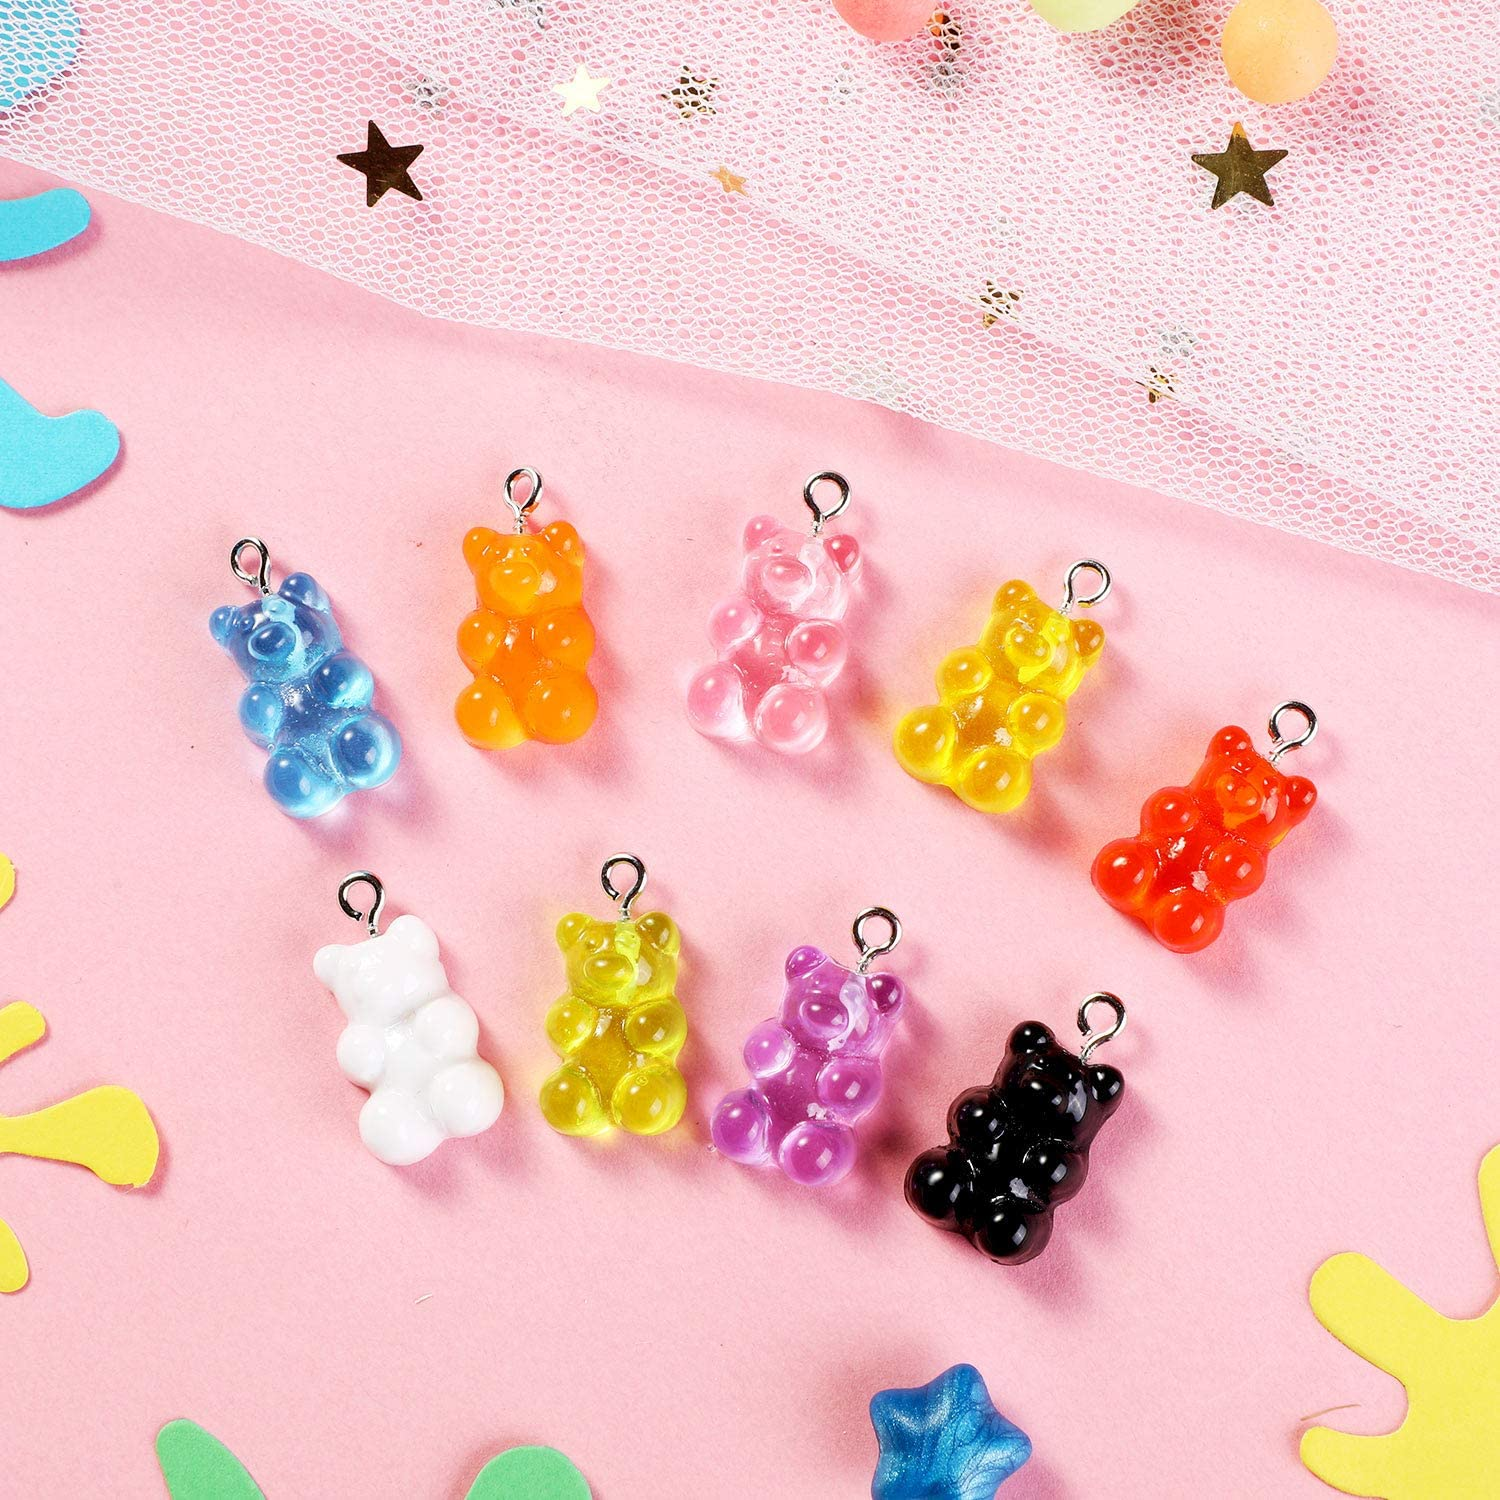 54 Colorful Gummy Resin Bear Charms Pendants Resin Bear Keychains for DIY Jewelry Necklace Supplies